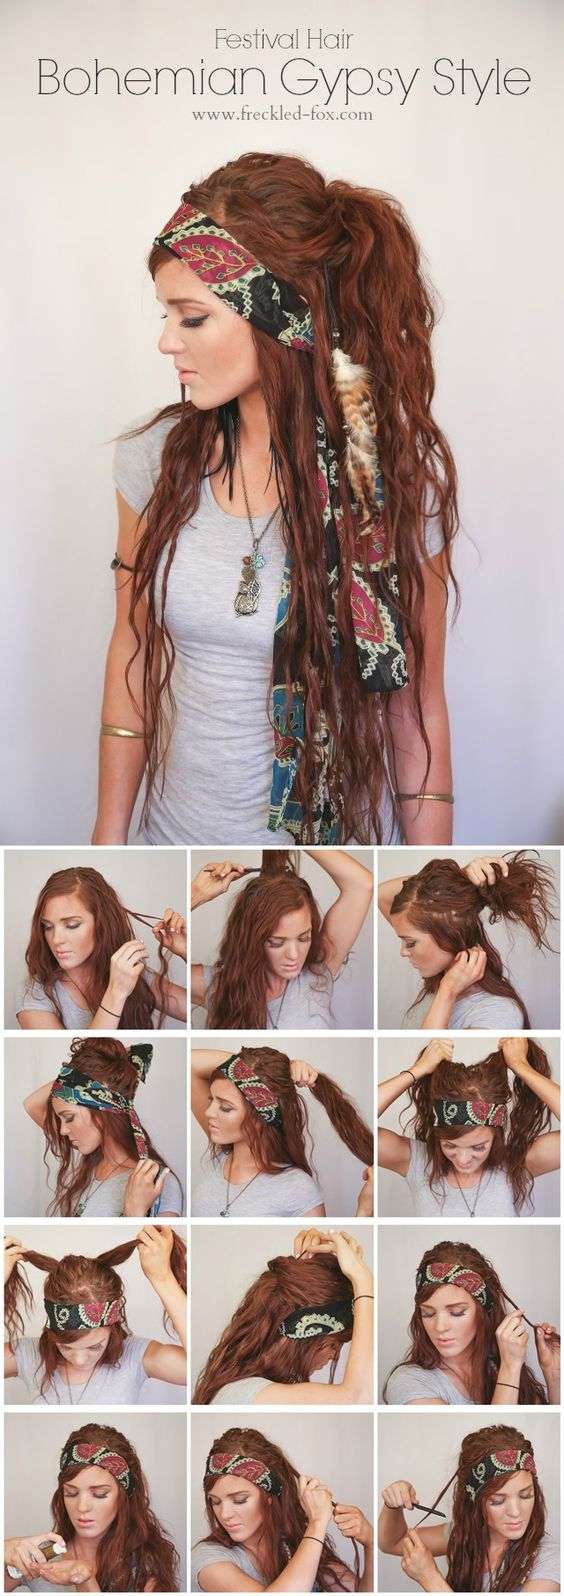 10 Beautiful Bohemian Hairstyles You'll Want To Try